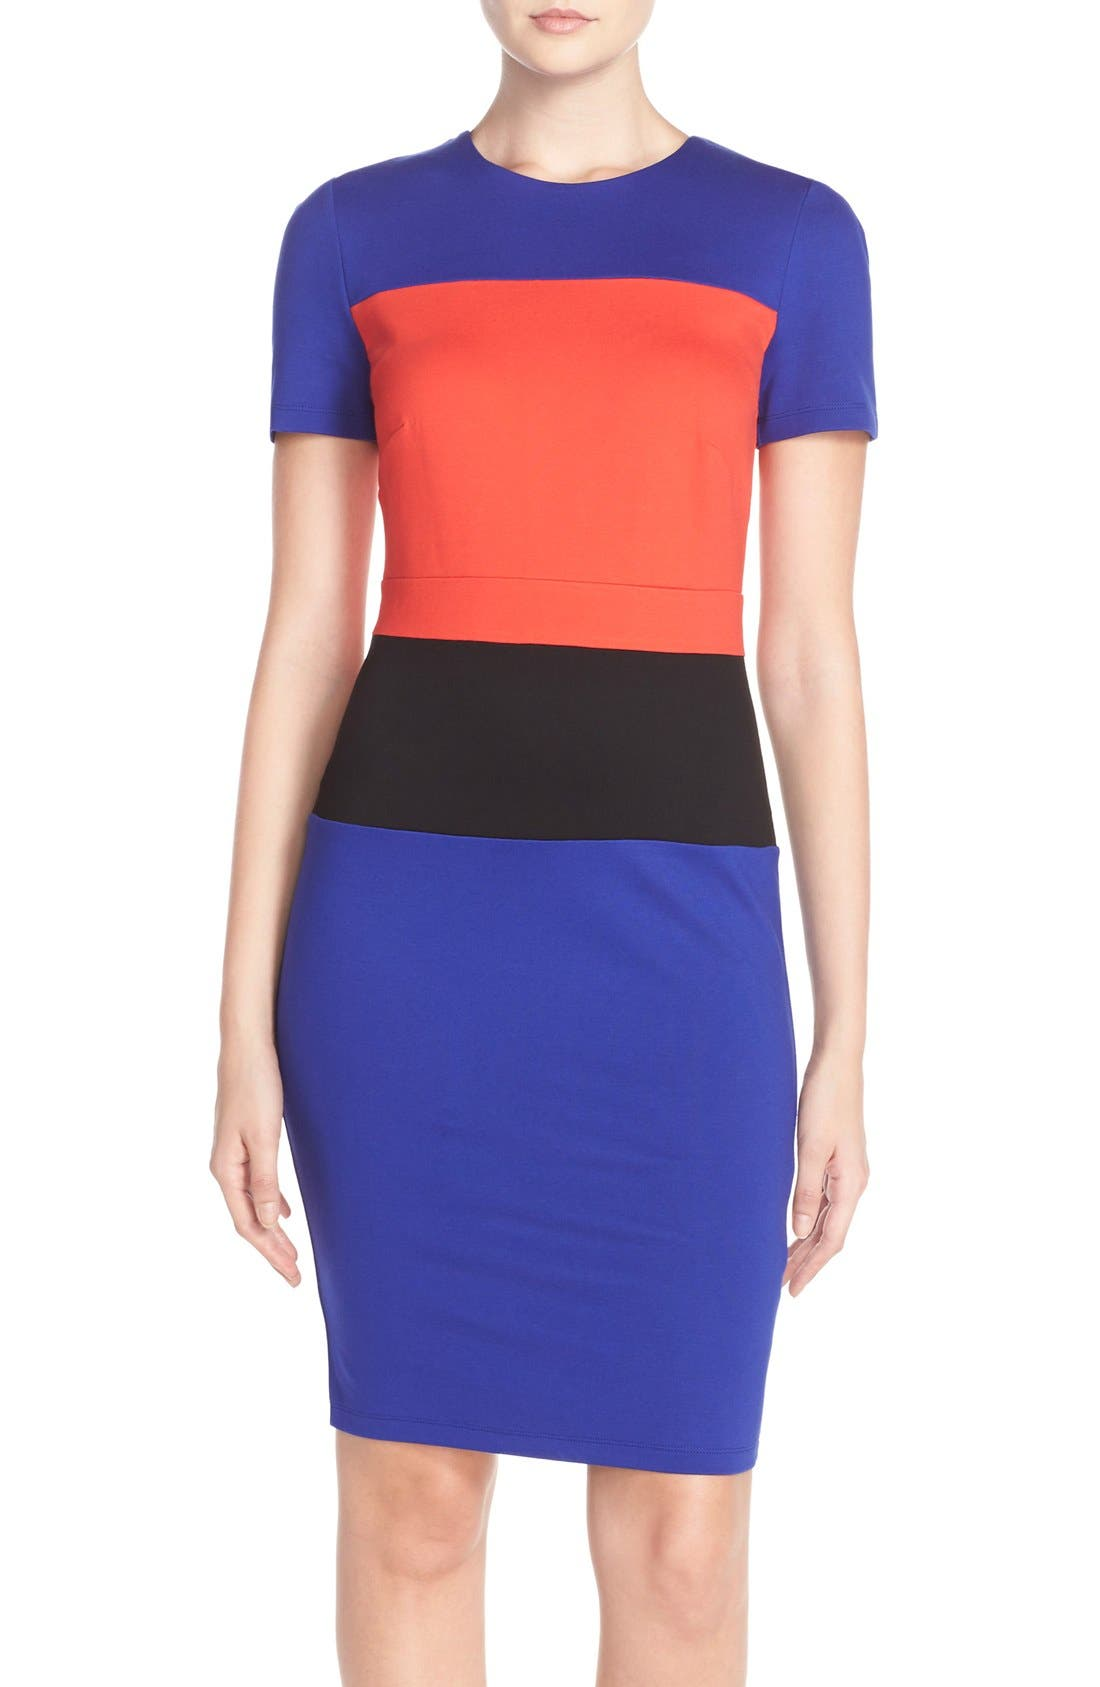 Alternate Image 1 Selected - French Connection ColorblockJersey Sheath Dress